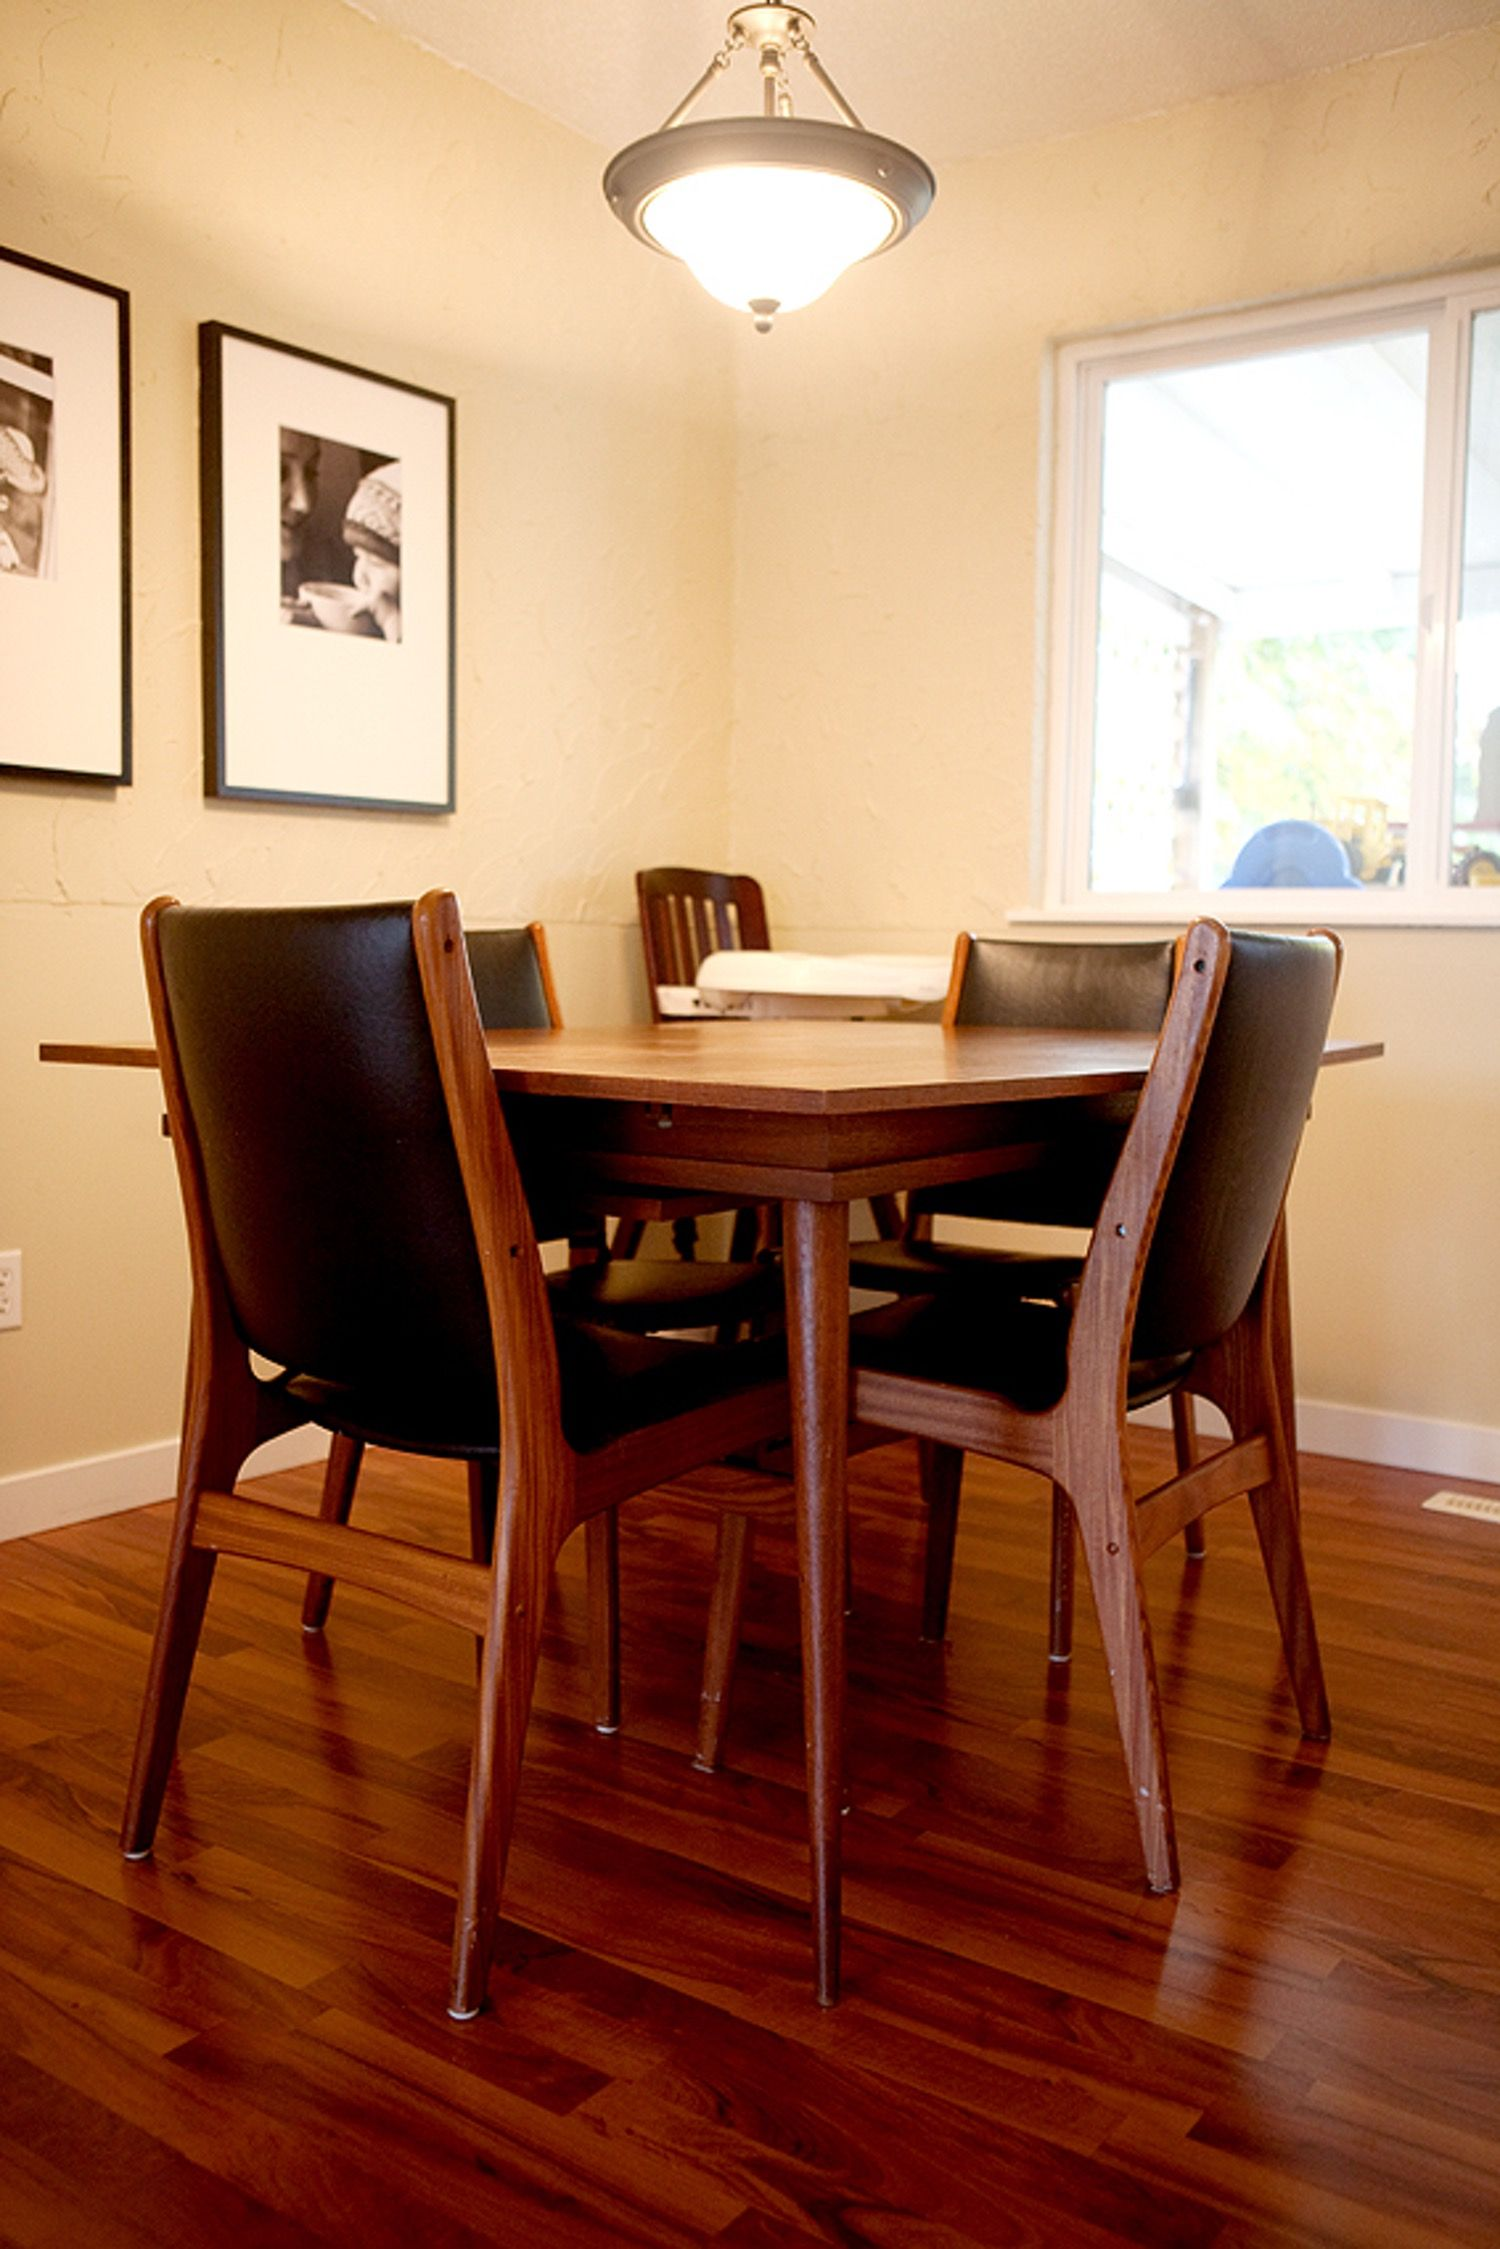 Best Way to Refinish a Teak Dining Table   Mid century ...